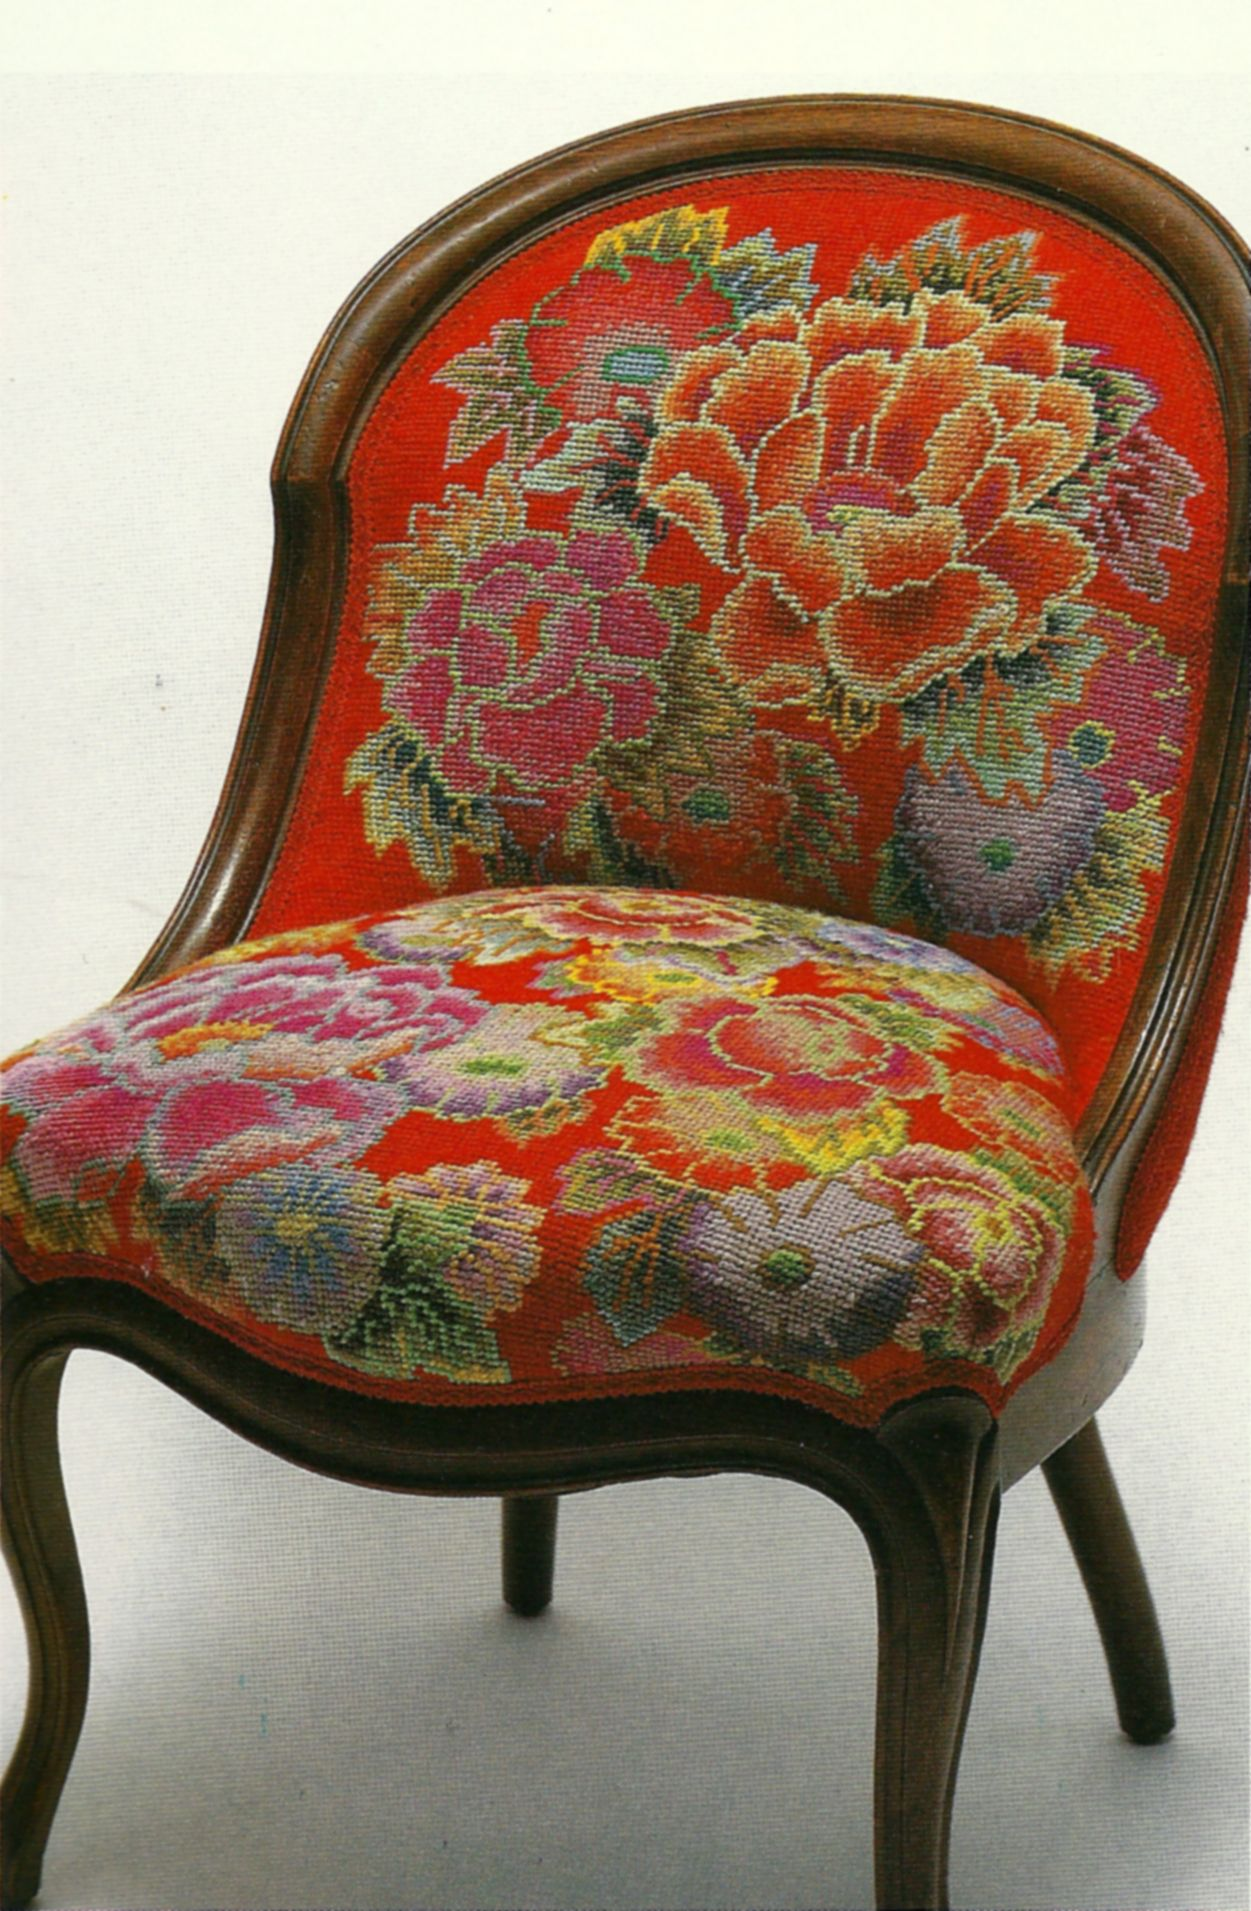 Red Flower Needlepoint Chair By Kaffe Fasset In 2019